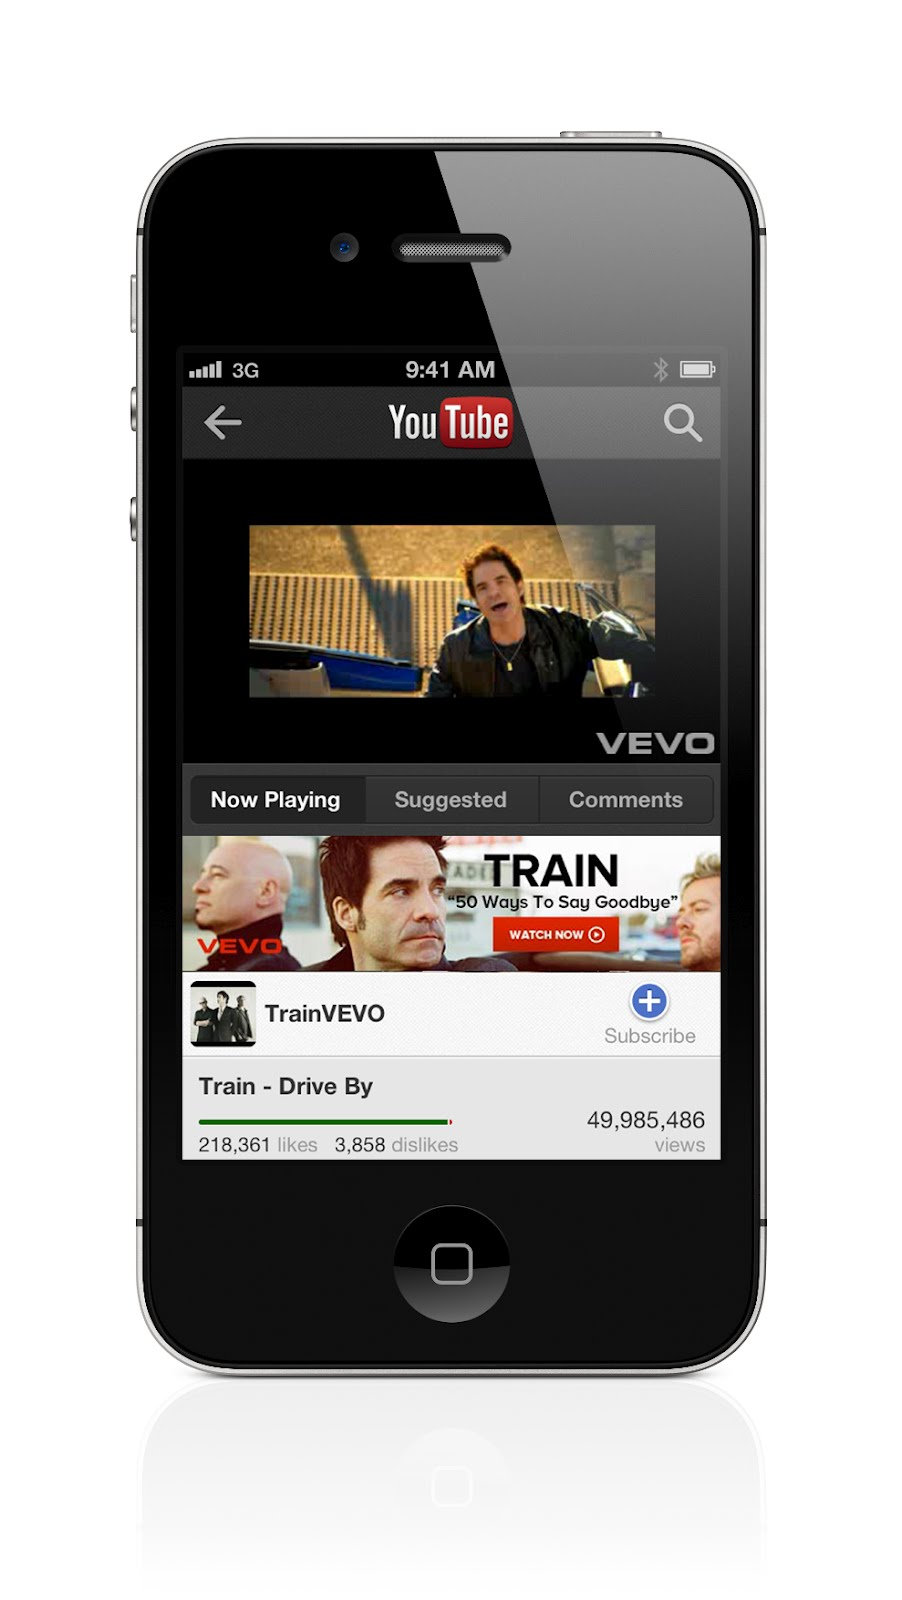 Official Google Blog: Introducing A New YouTube App For